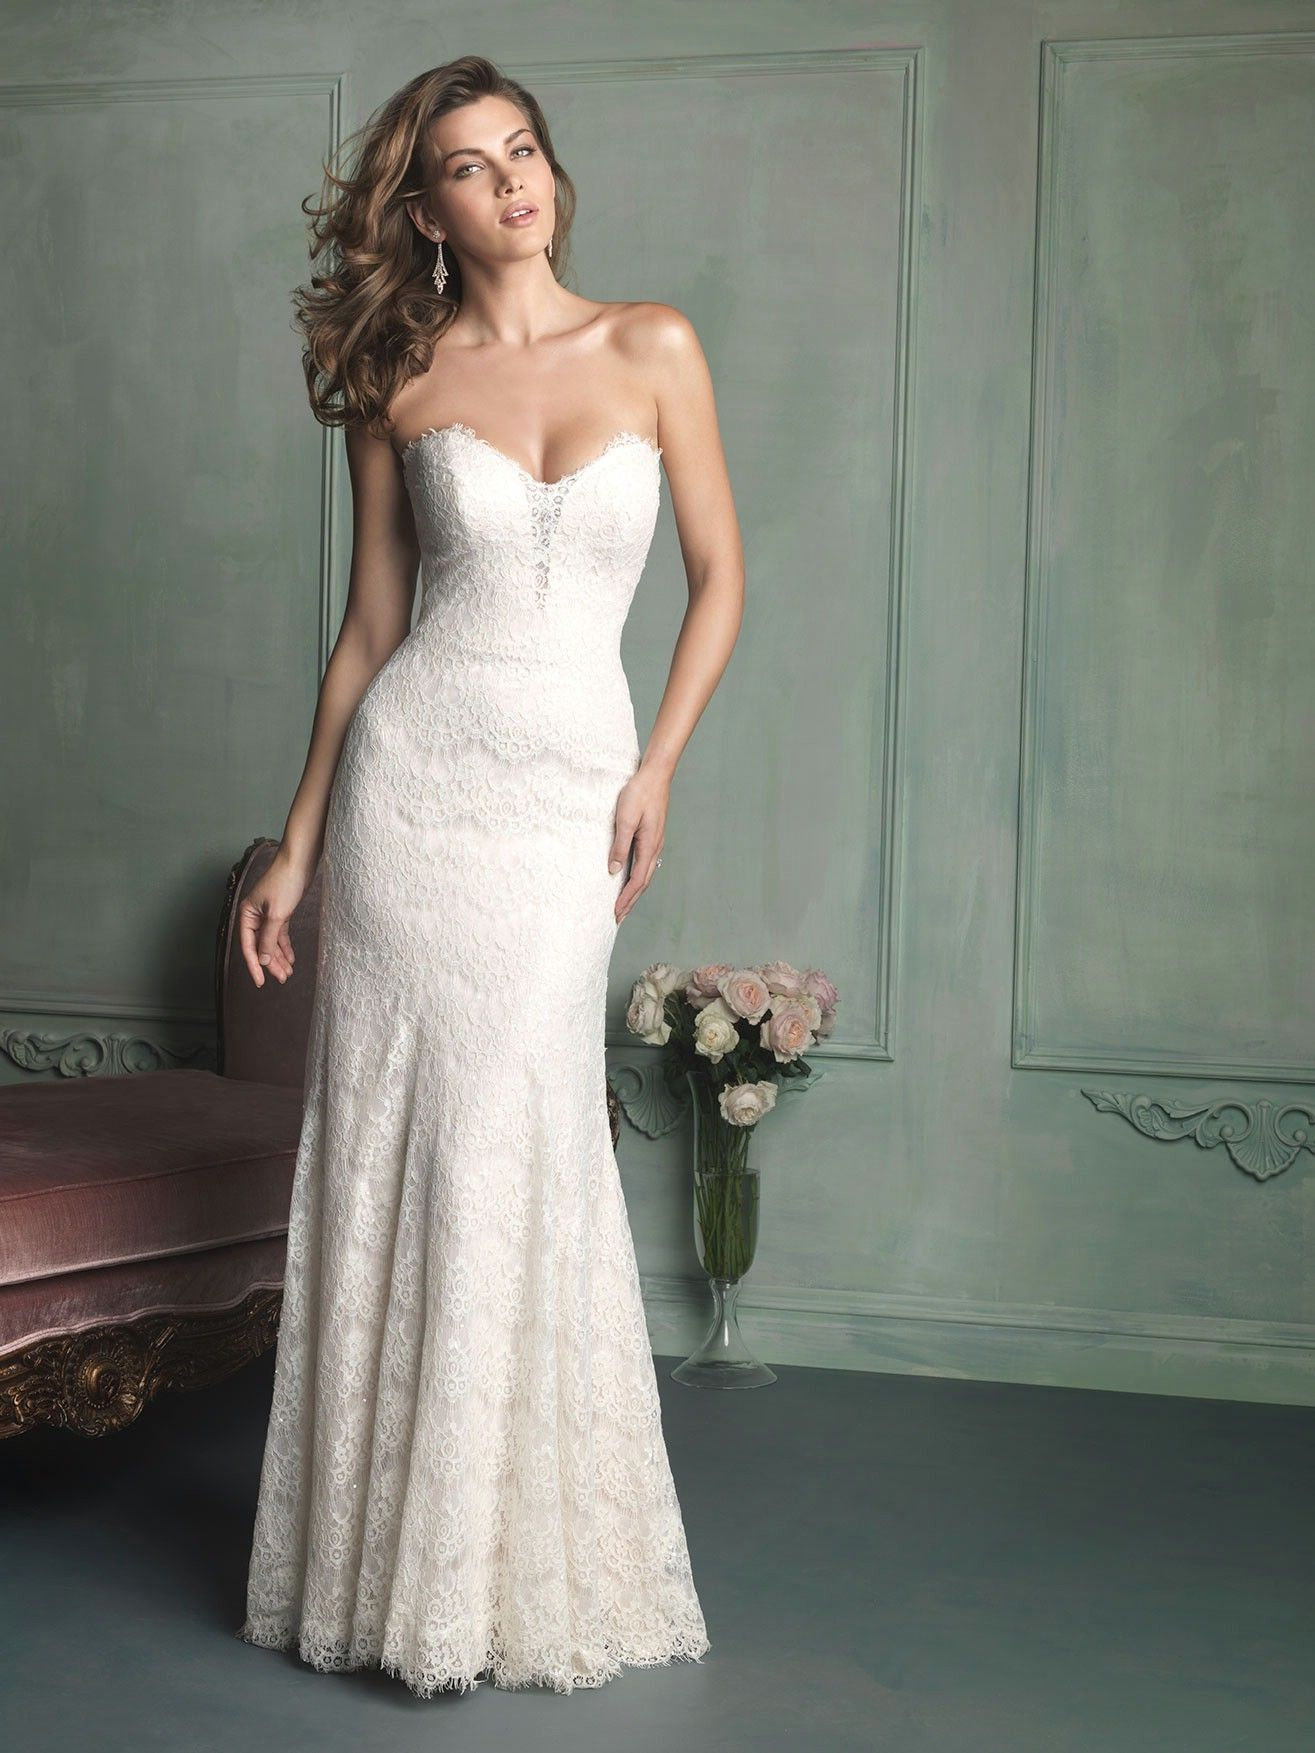 Simply stunning! Allure Wedding Dresses - Style 9107 #wedding ...